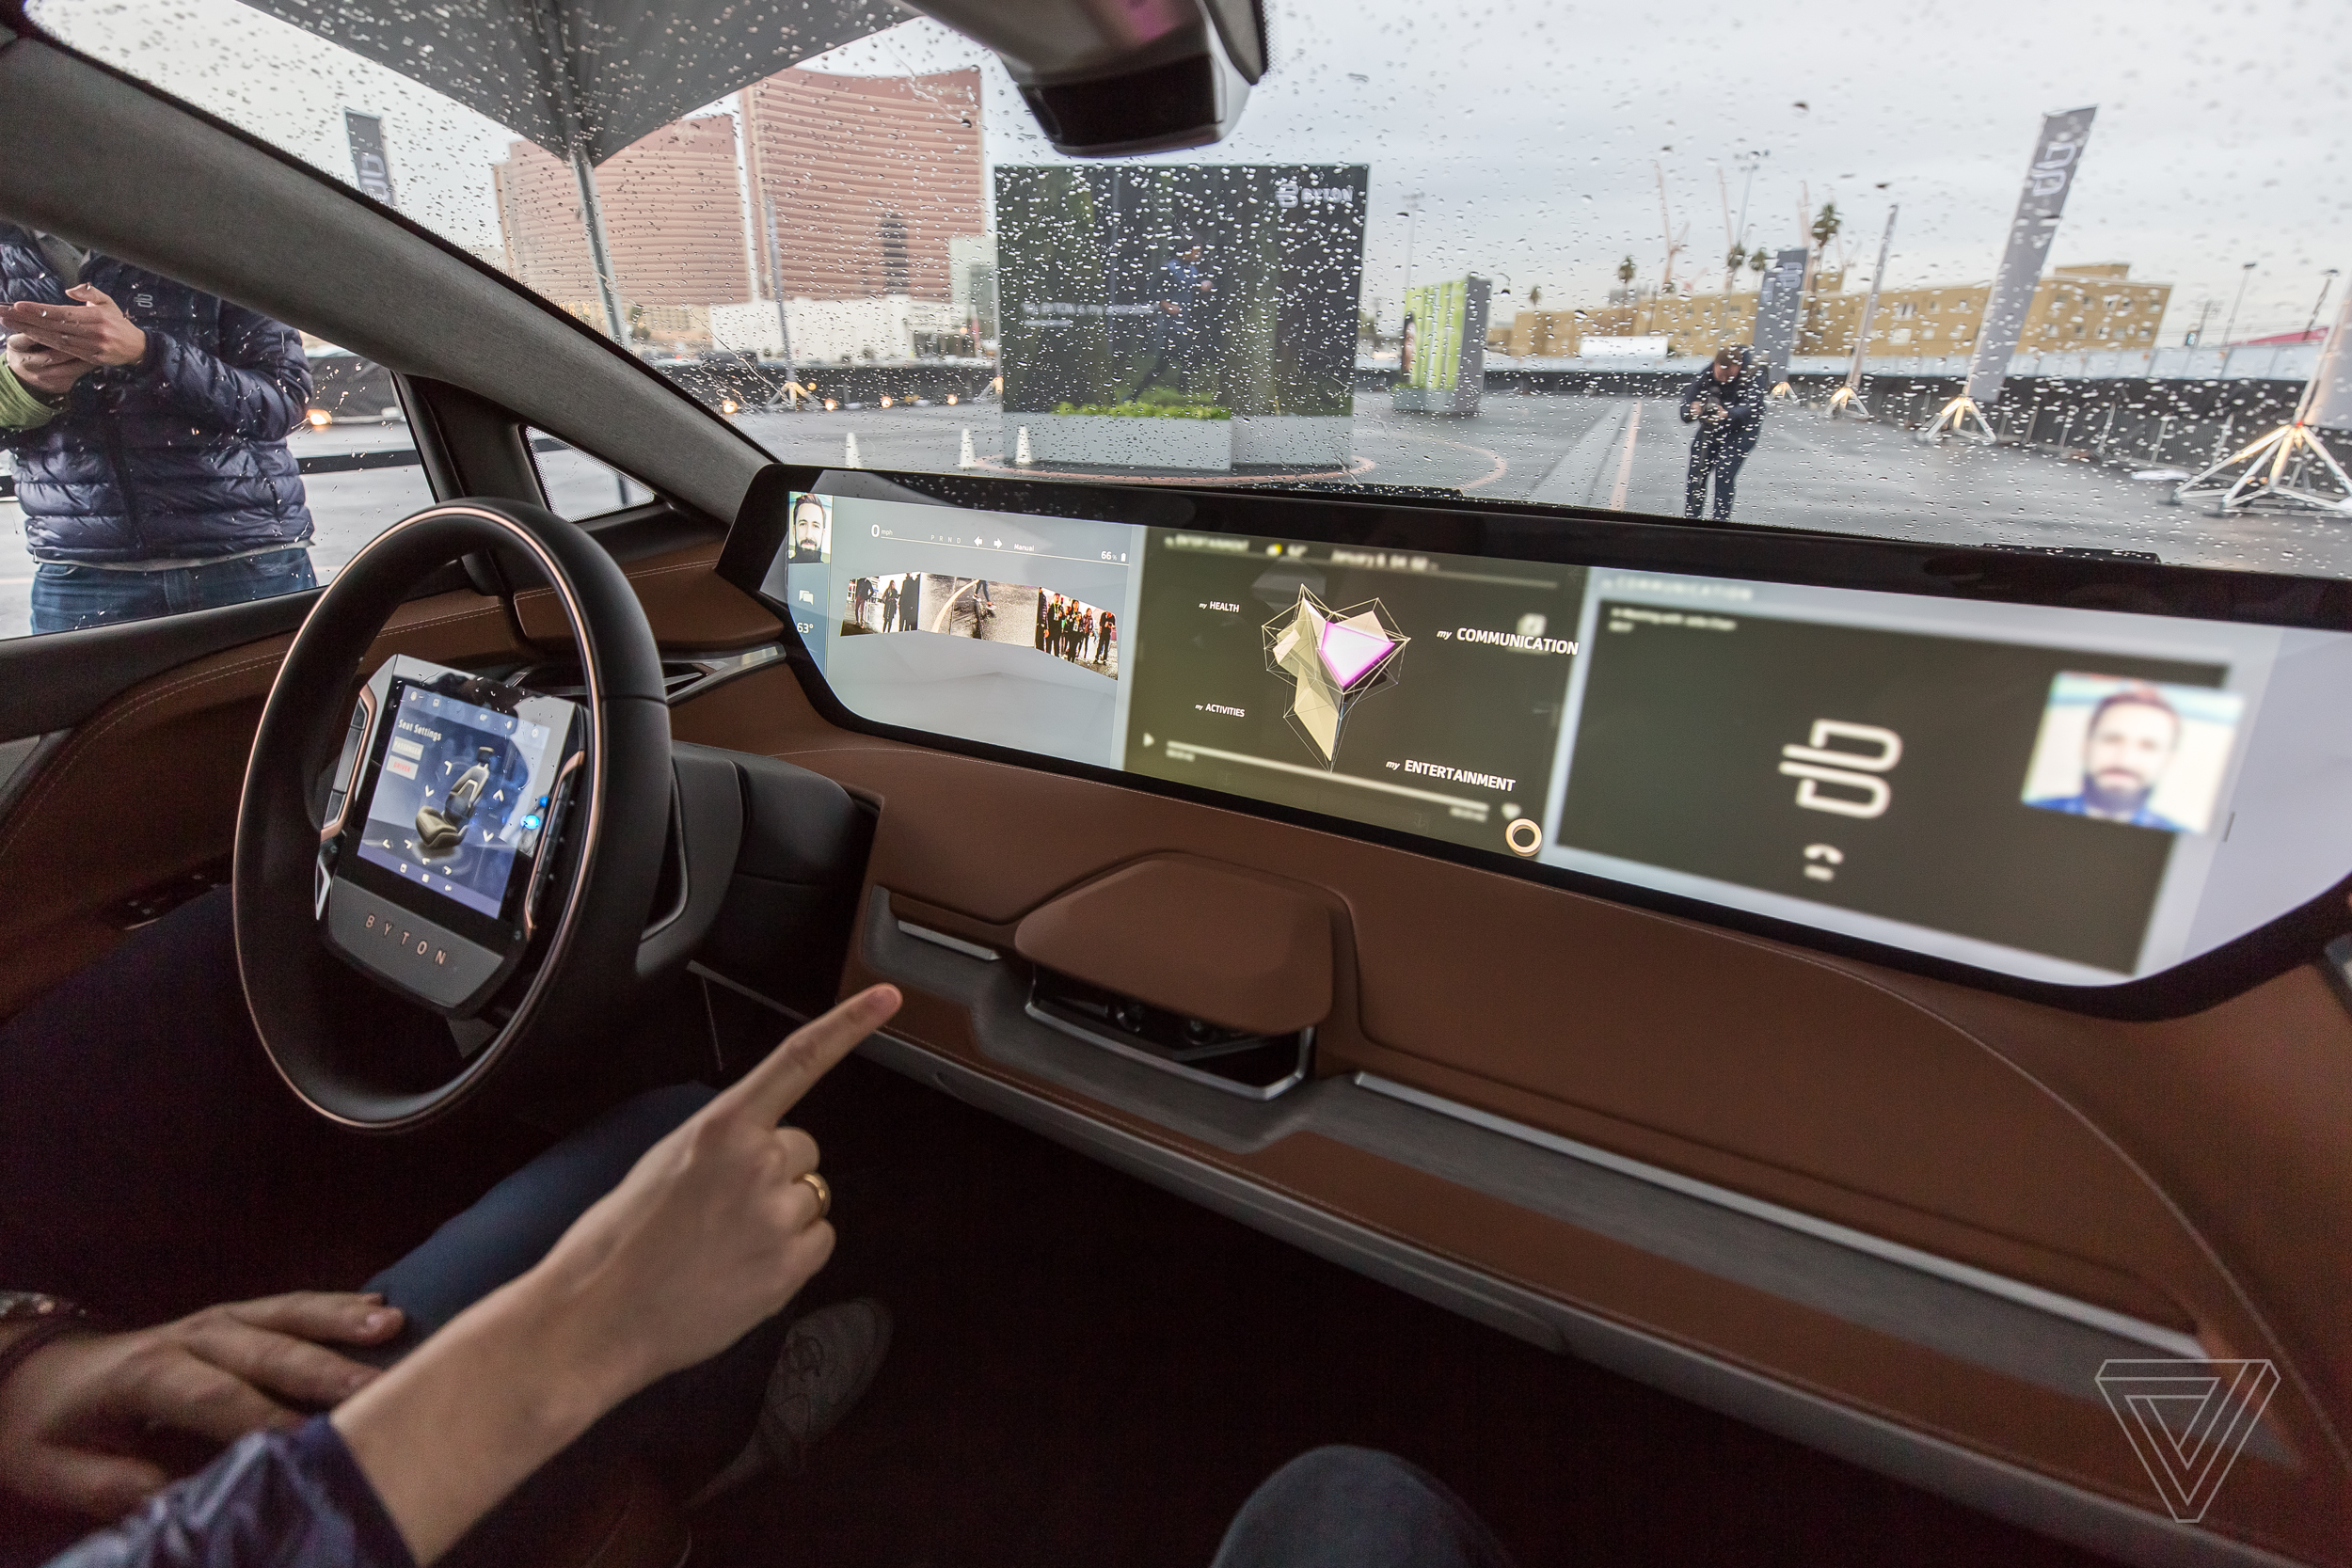 How Many Inches In A Meter >> Riding in Byton's far-out concept SUV is like being in first class - The Verge